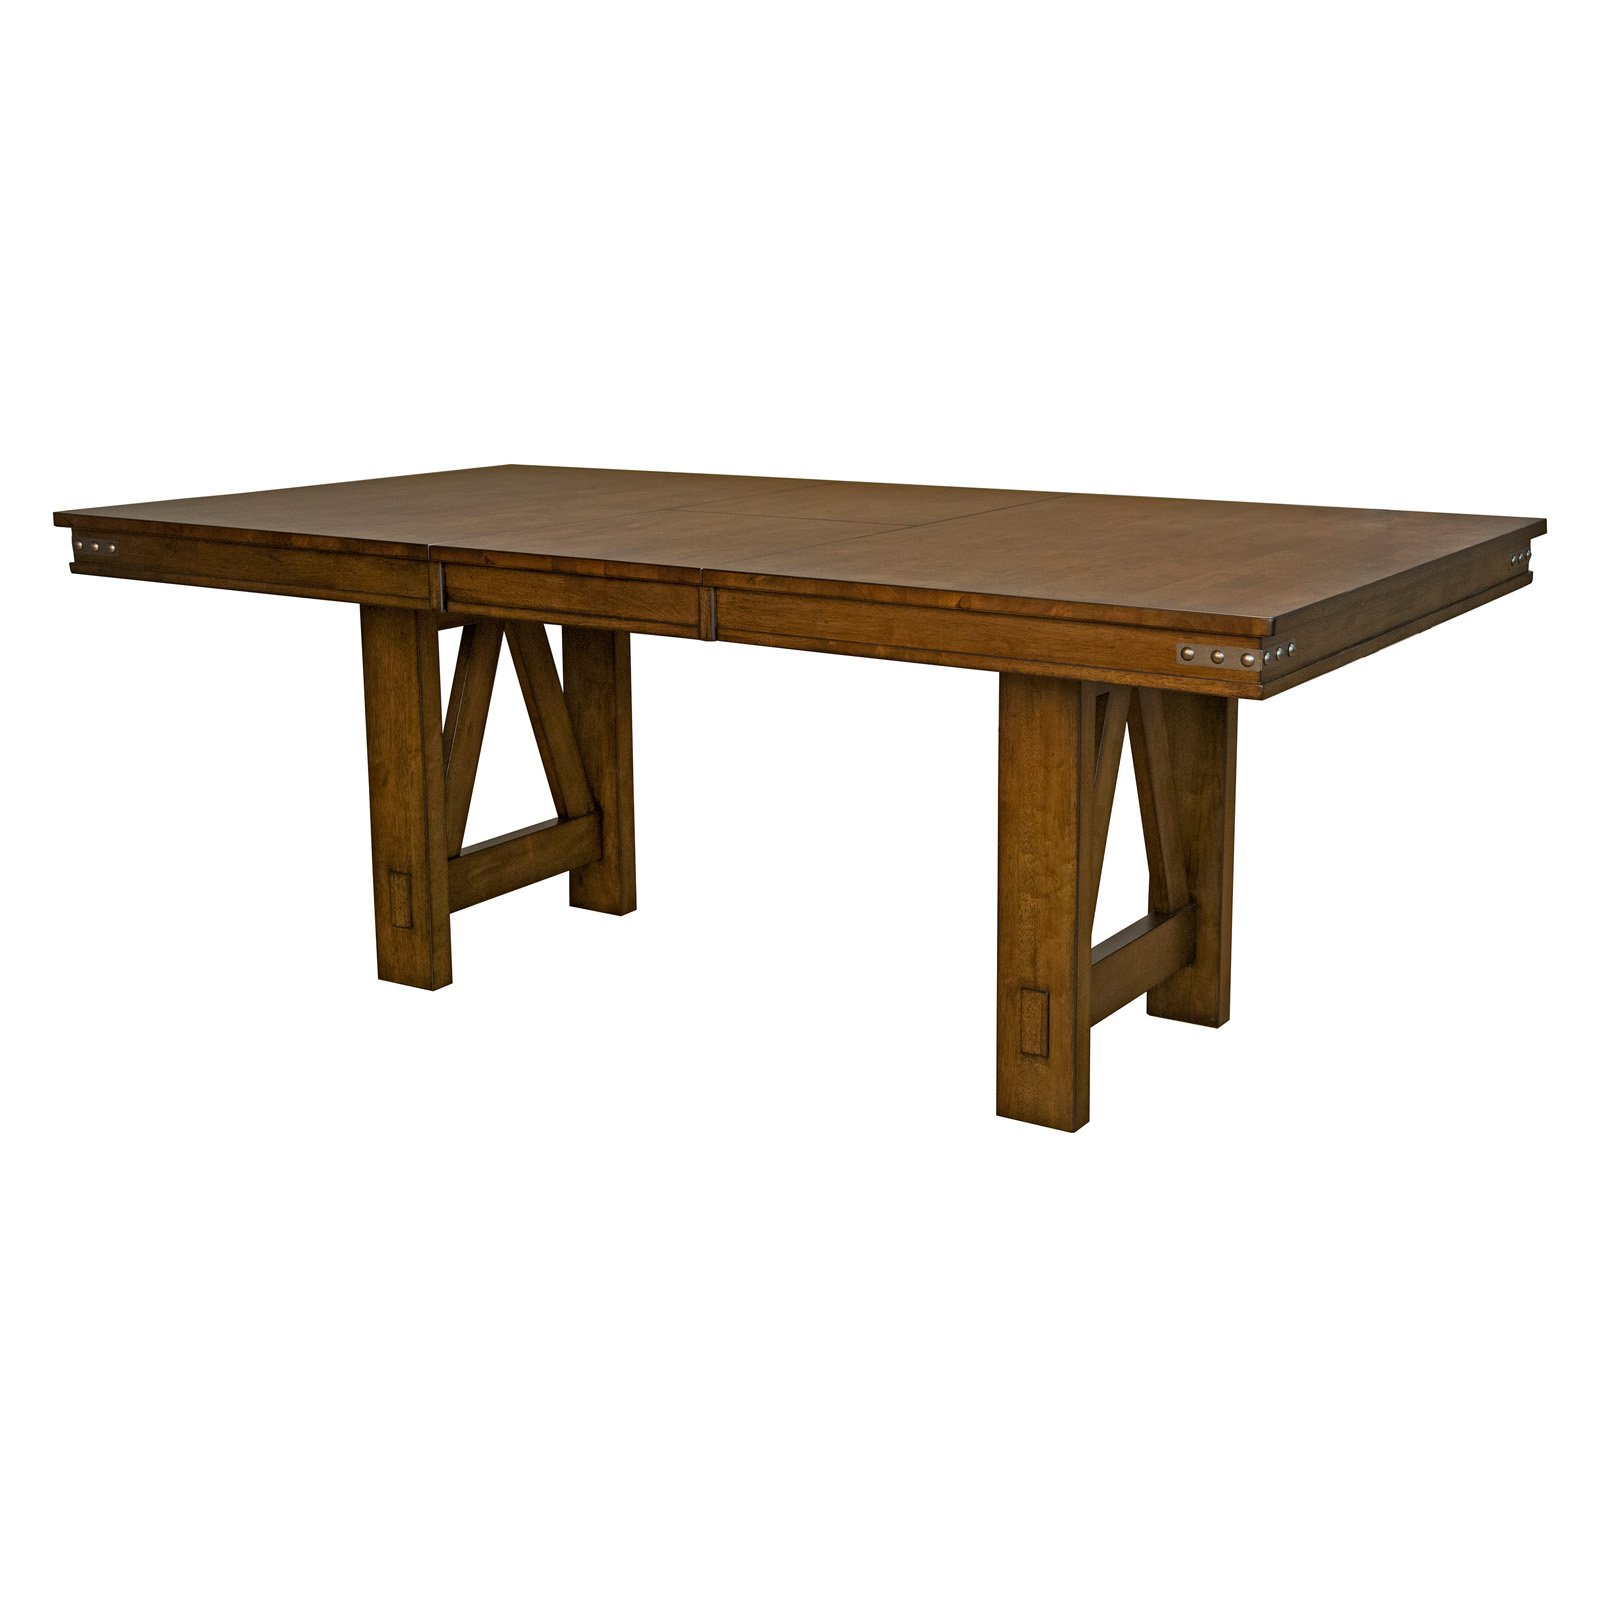 A America Eastwood Trestle Dining Table – Walmart Throughout Most Popular Trestle Dining Tables (View 2 of 15)